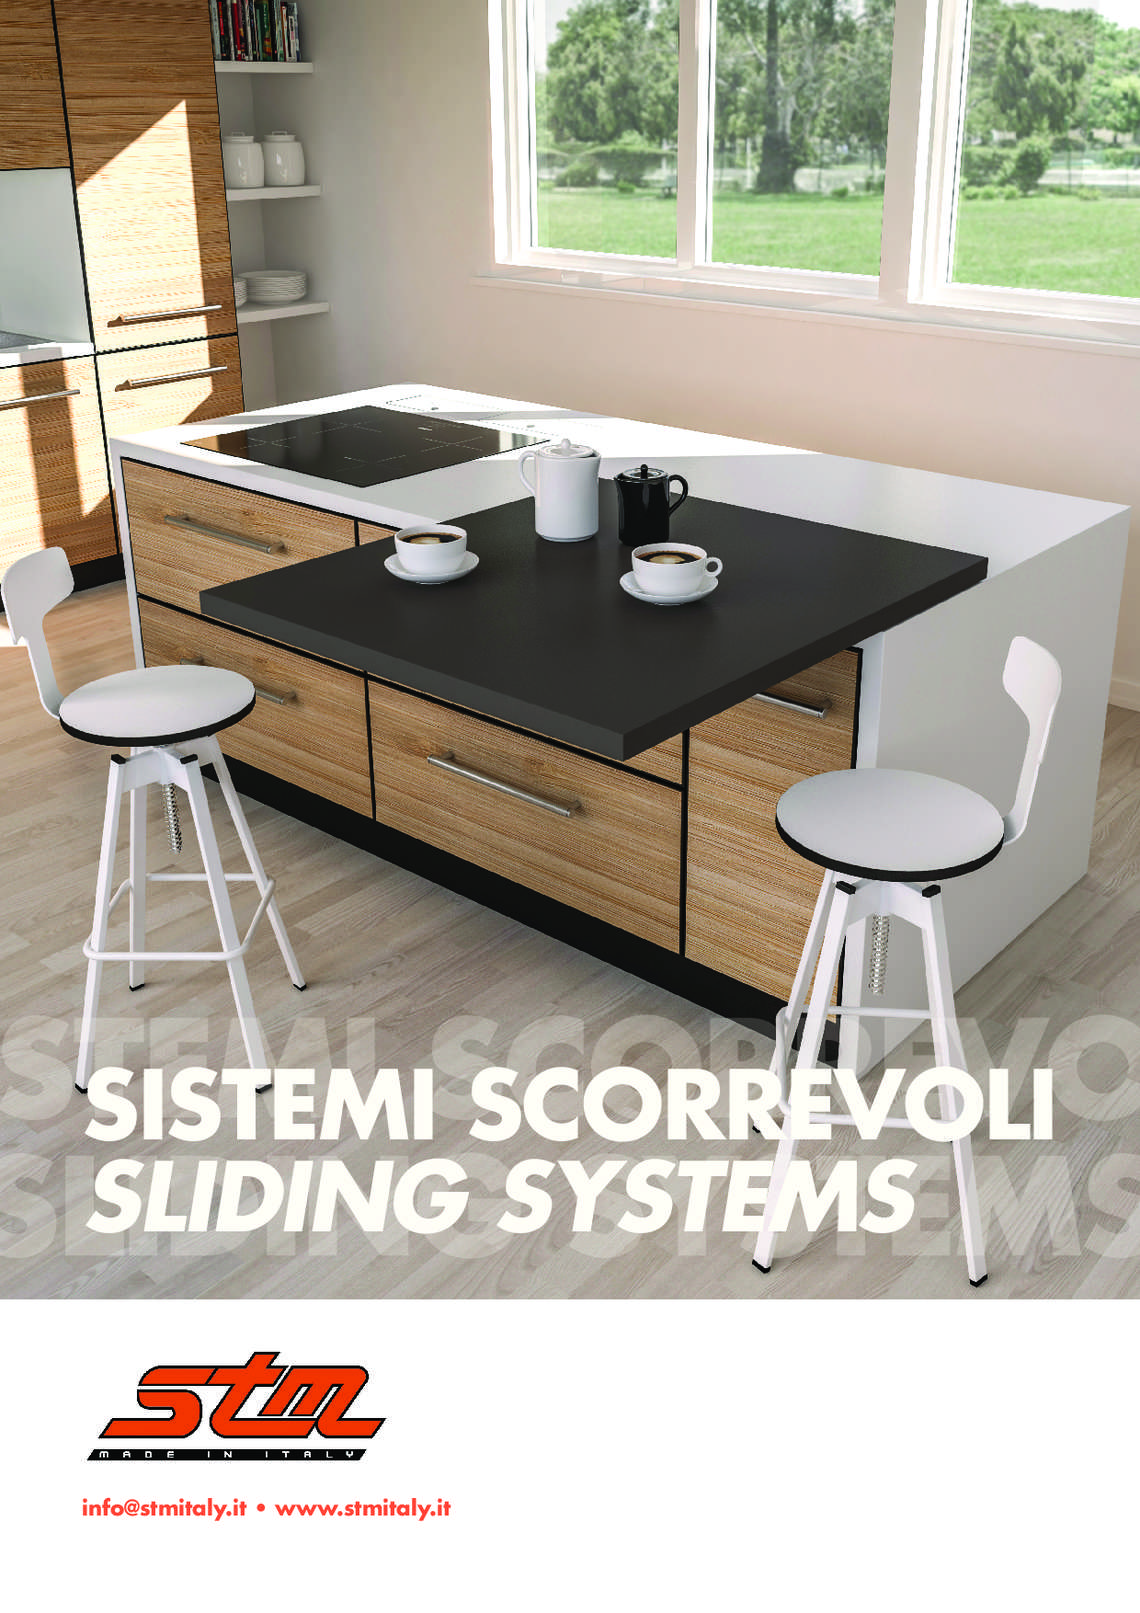 Sliding systems catalogue year 2018